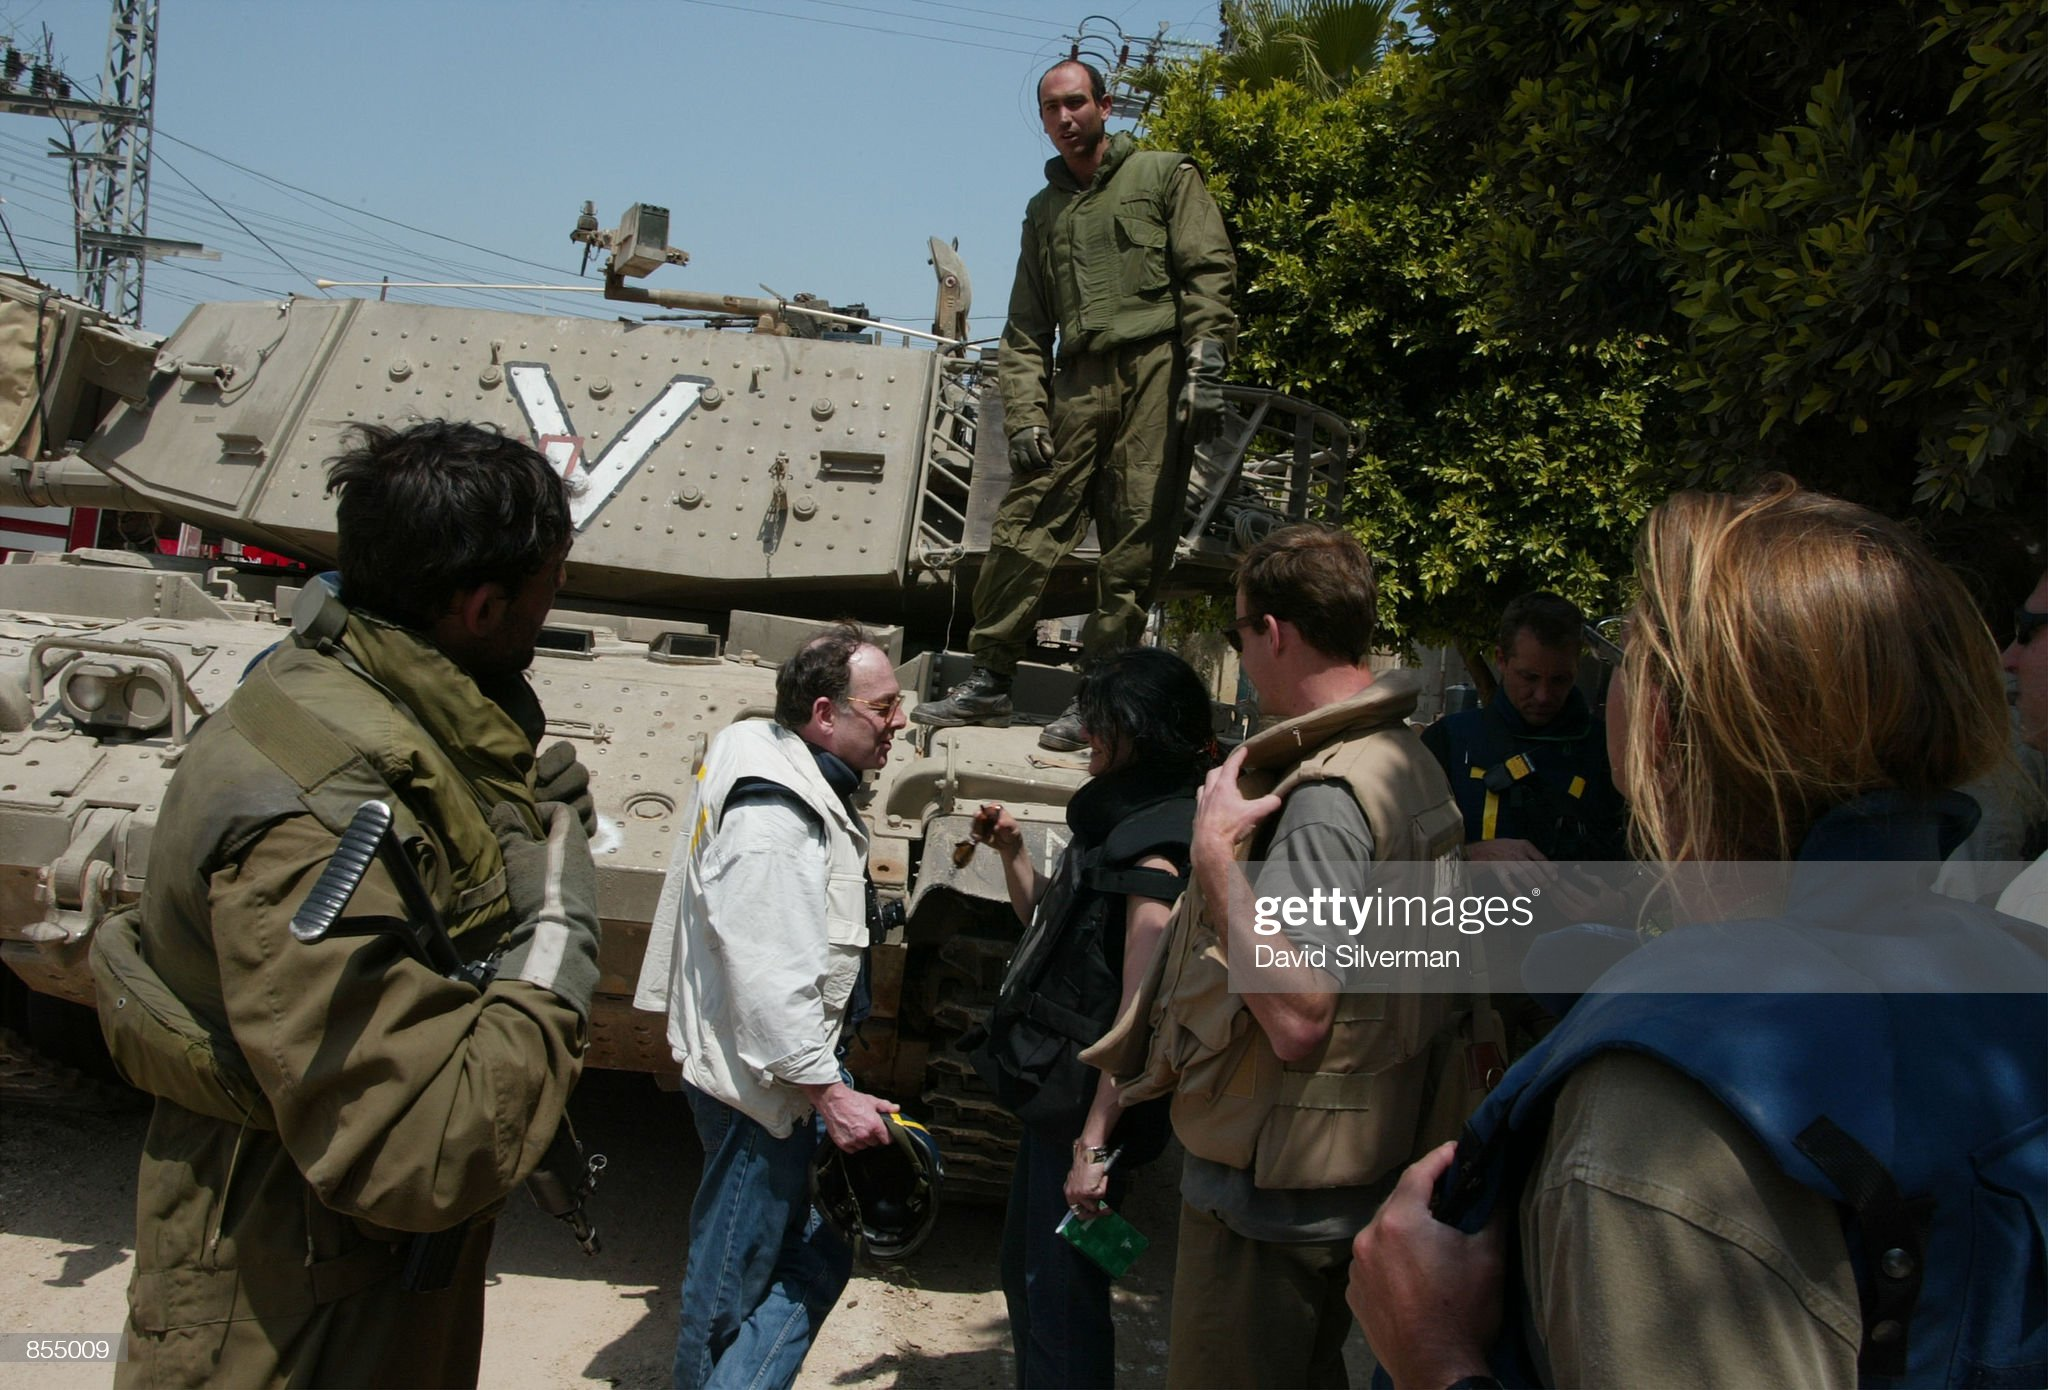 https://media.gettyimages.com/photos/foreign-journalists-are-stopped-between-by-an-israeli-tank-crew-in-picture-id855009?s=2048x2048